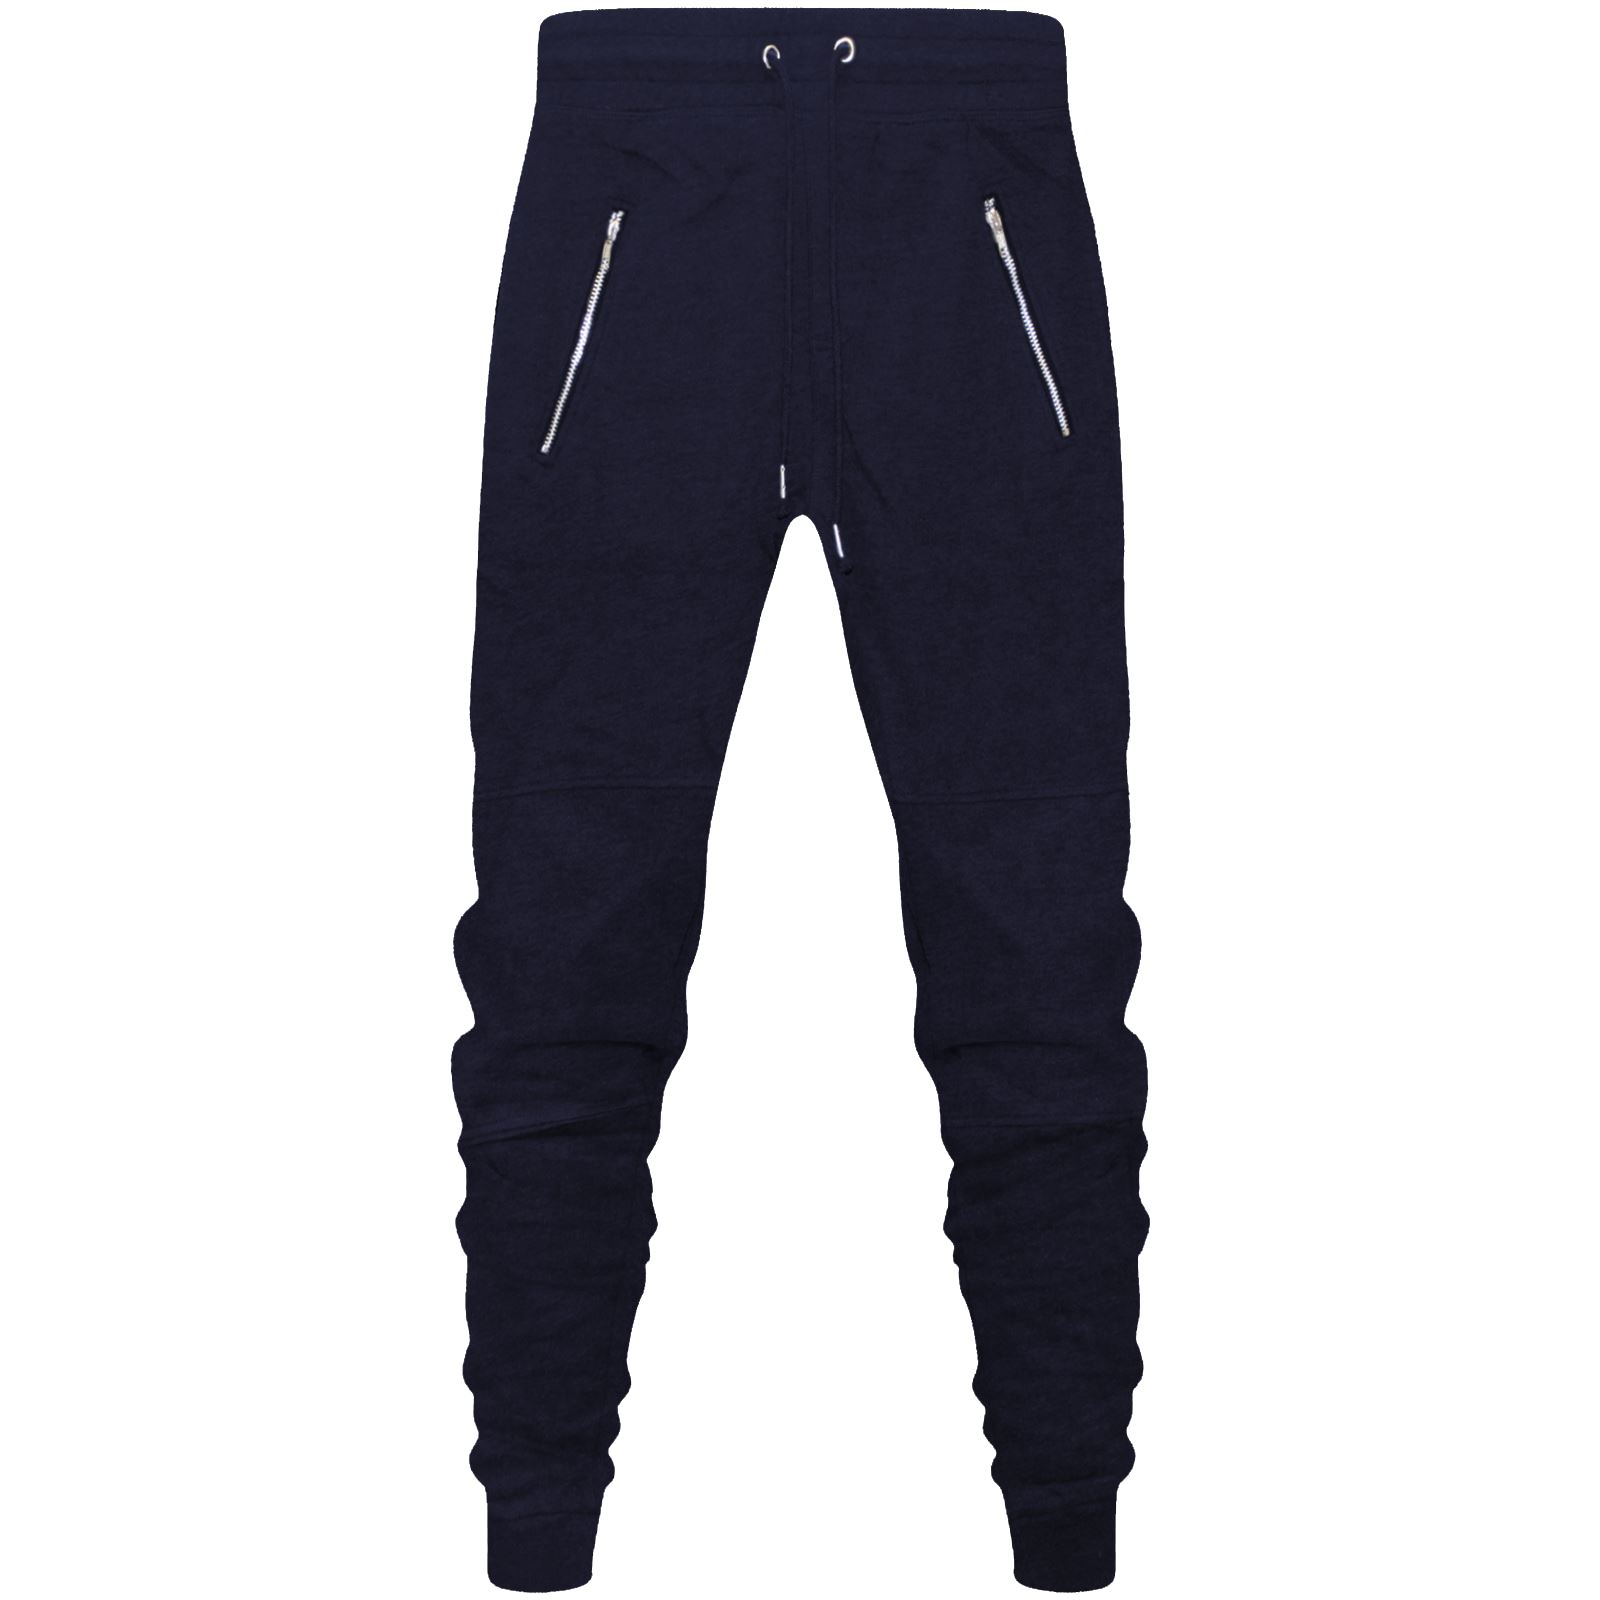 b506df12 New Mens Skinny Slim Fit Joggers Jogging Bottom Fleece Gym Pants Zip ...